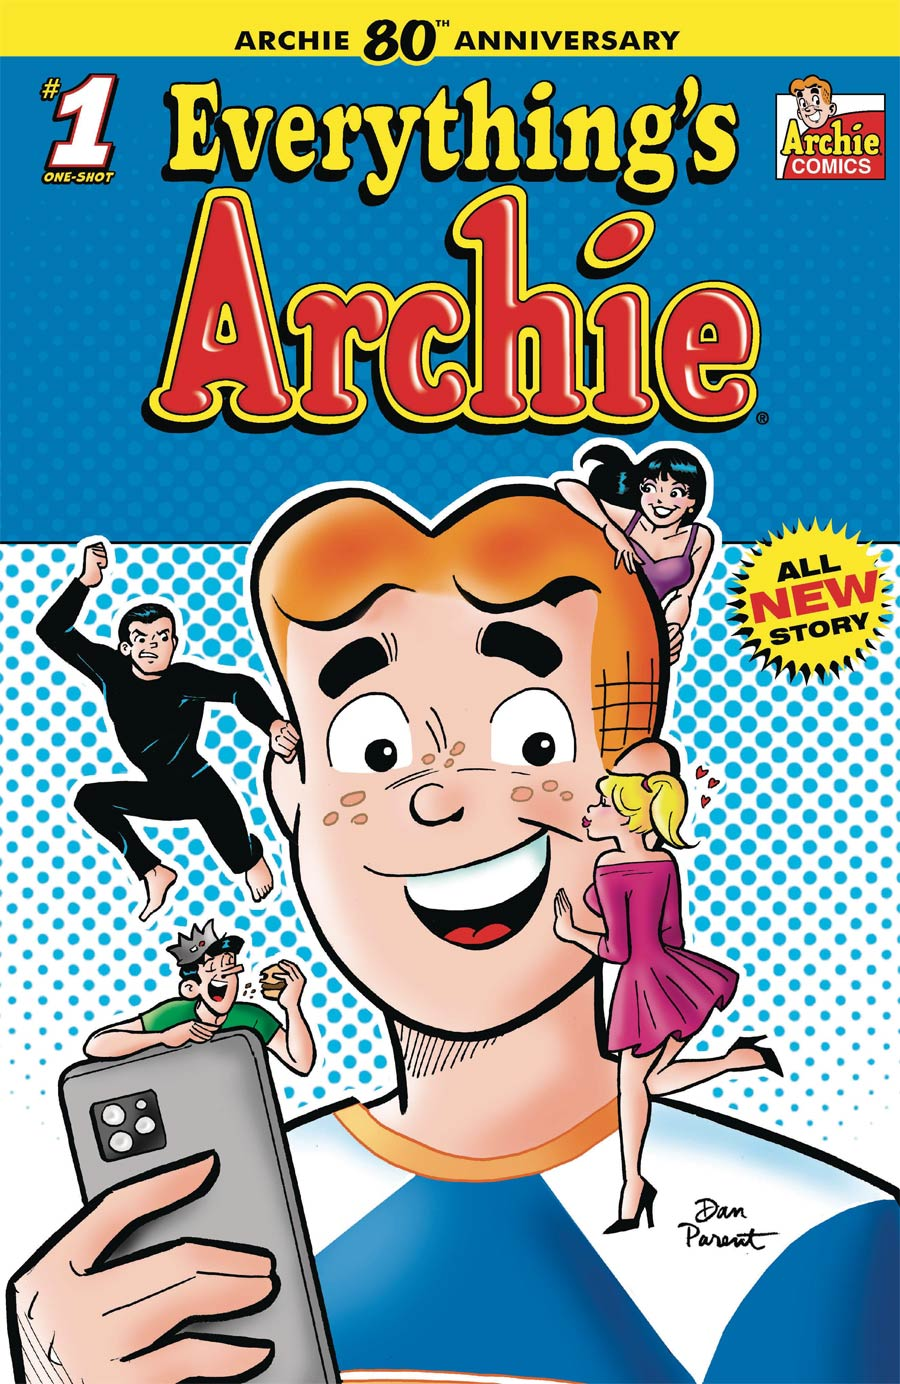 Archie 80th Anniversary #1 (One Shot) Everythings Archie Cover A Regular Dan Parent Cover